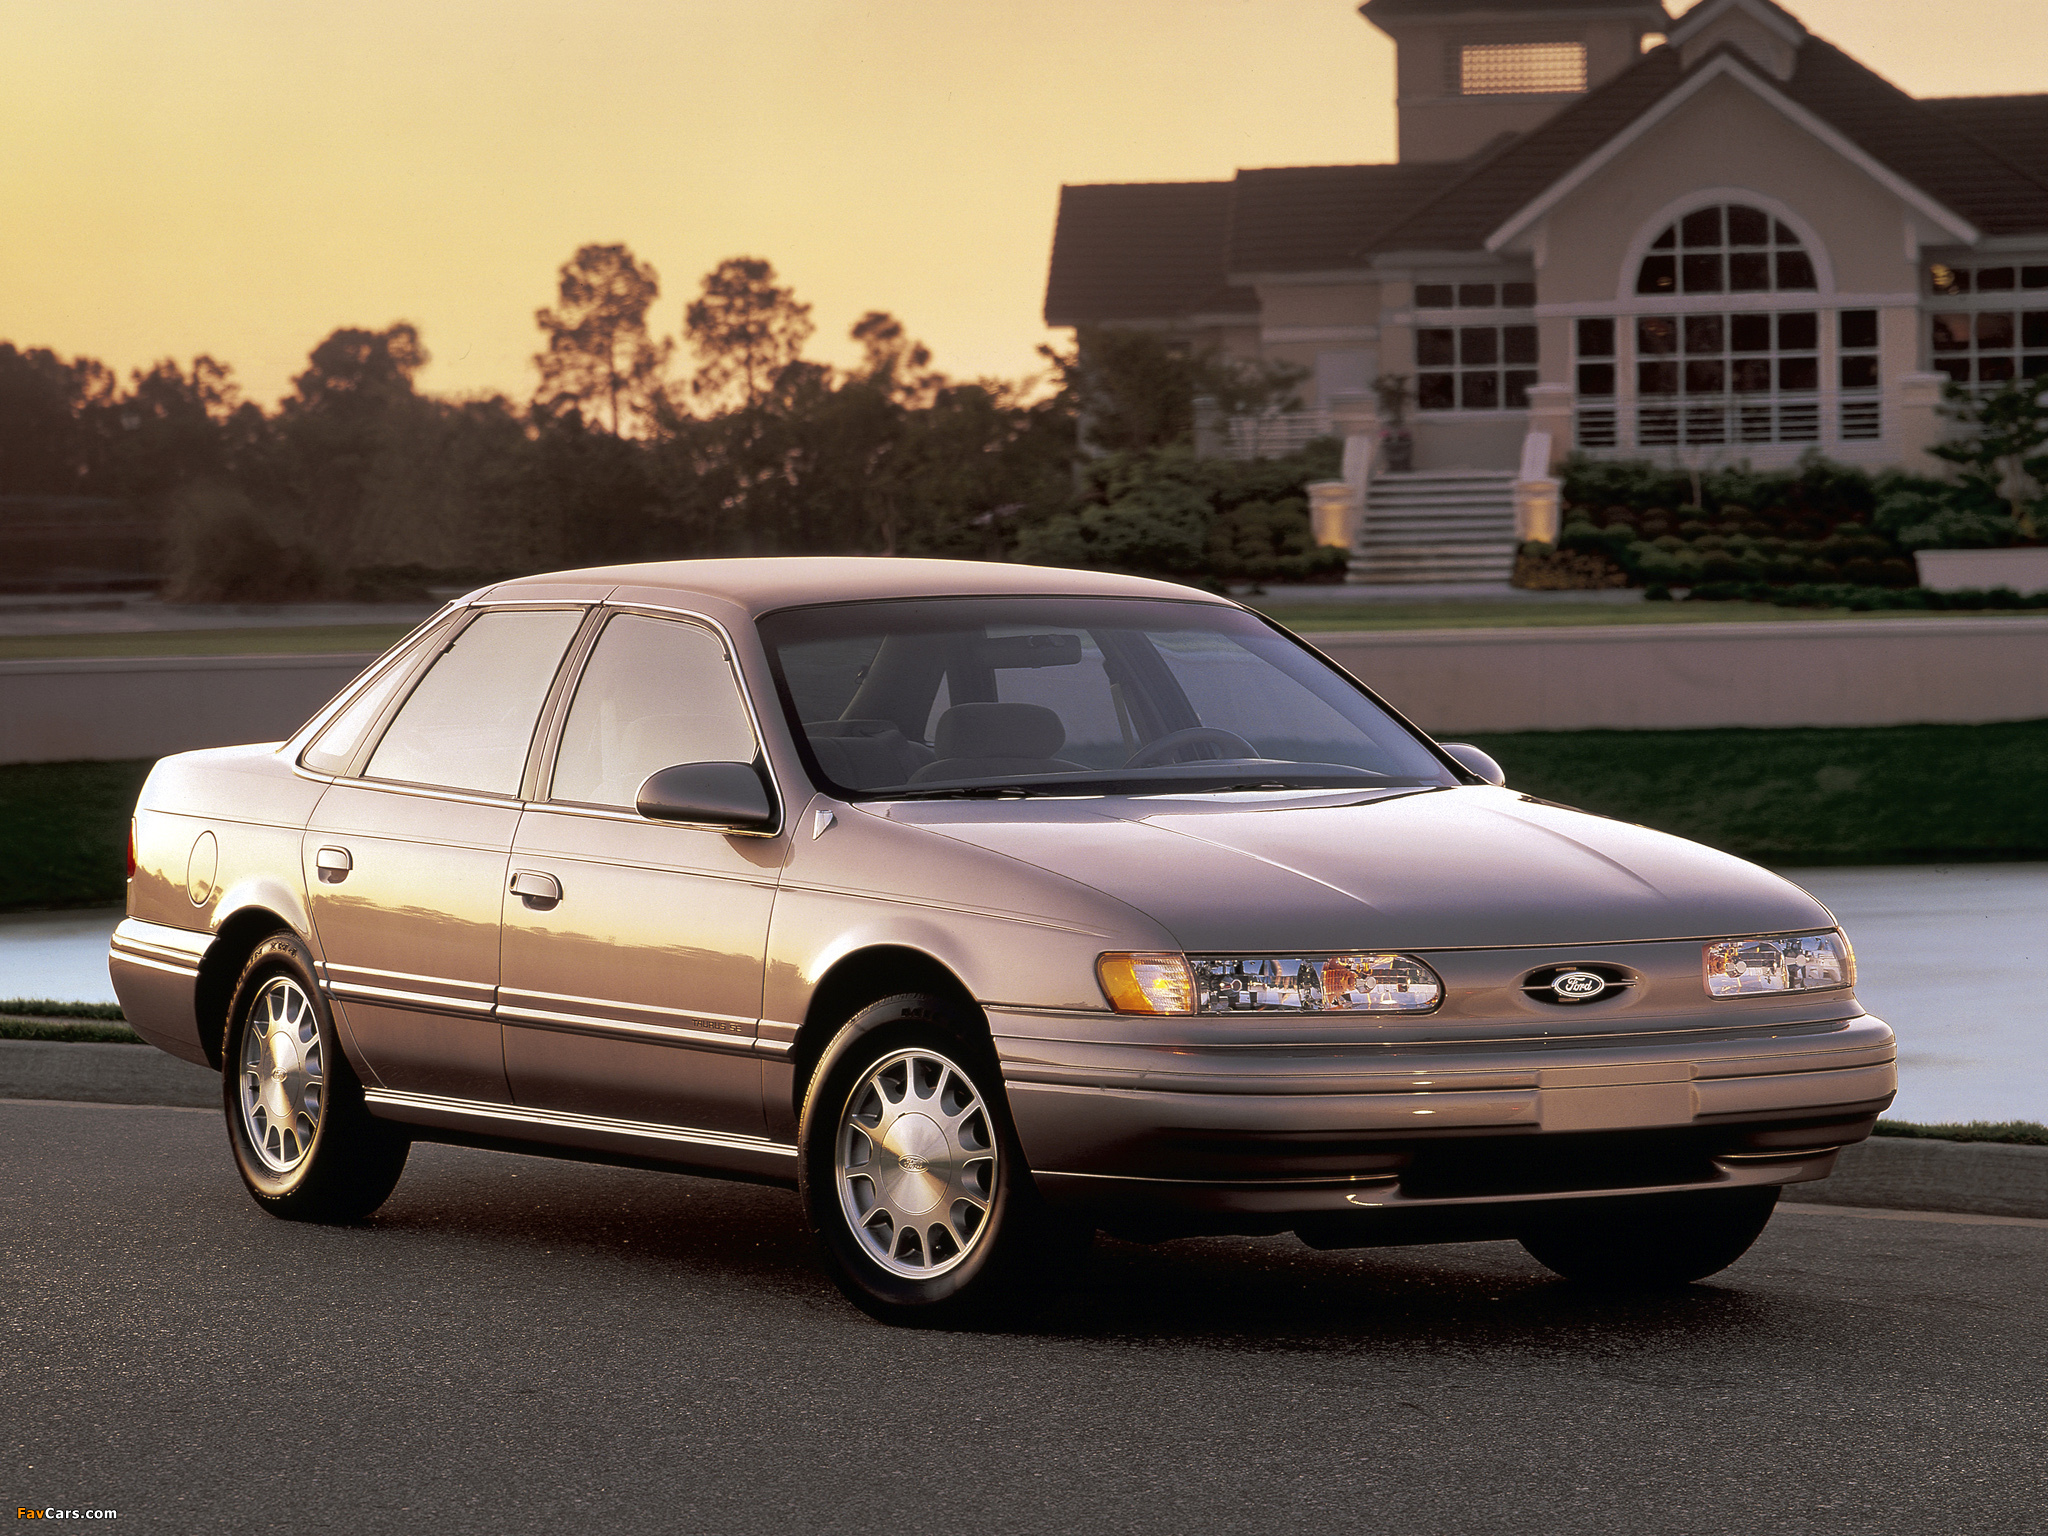 1990 Ford Taurus >> 1992 Ford Taurus – pictures, information and specs - Auto-Database.com